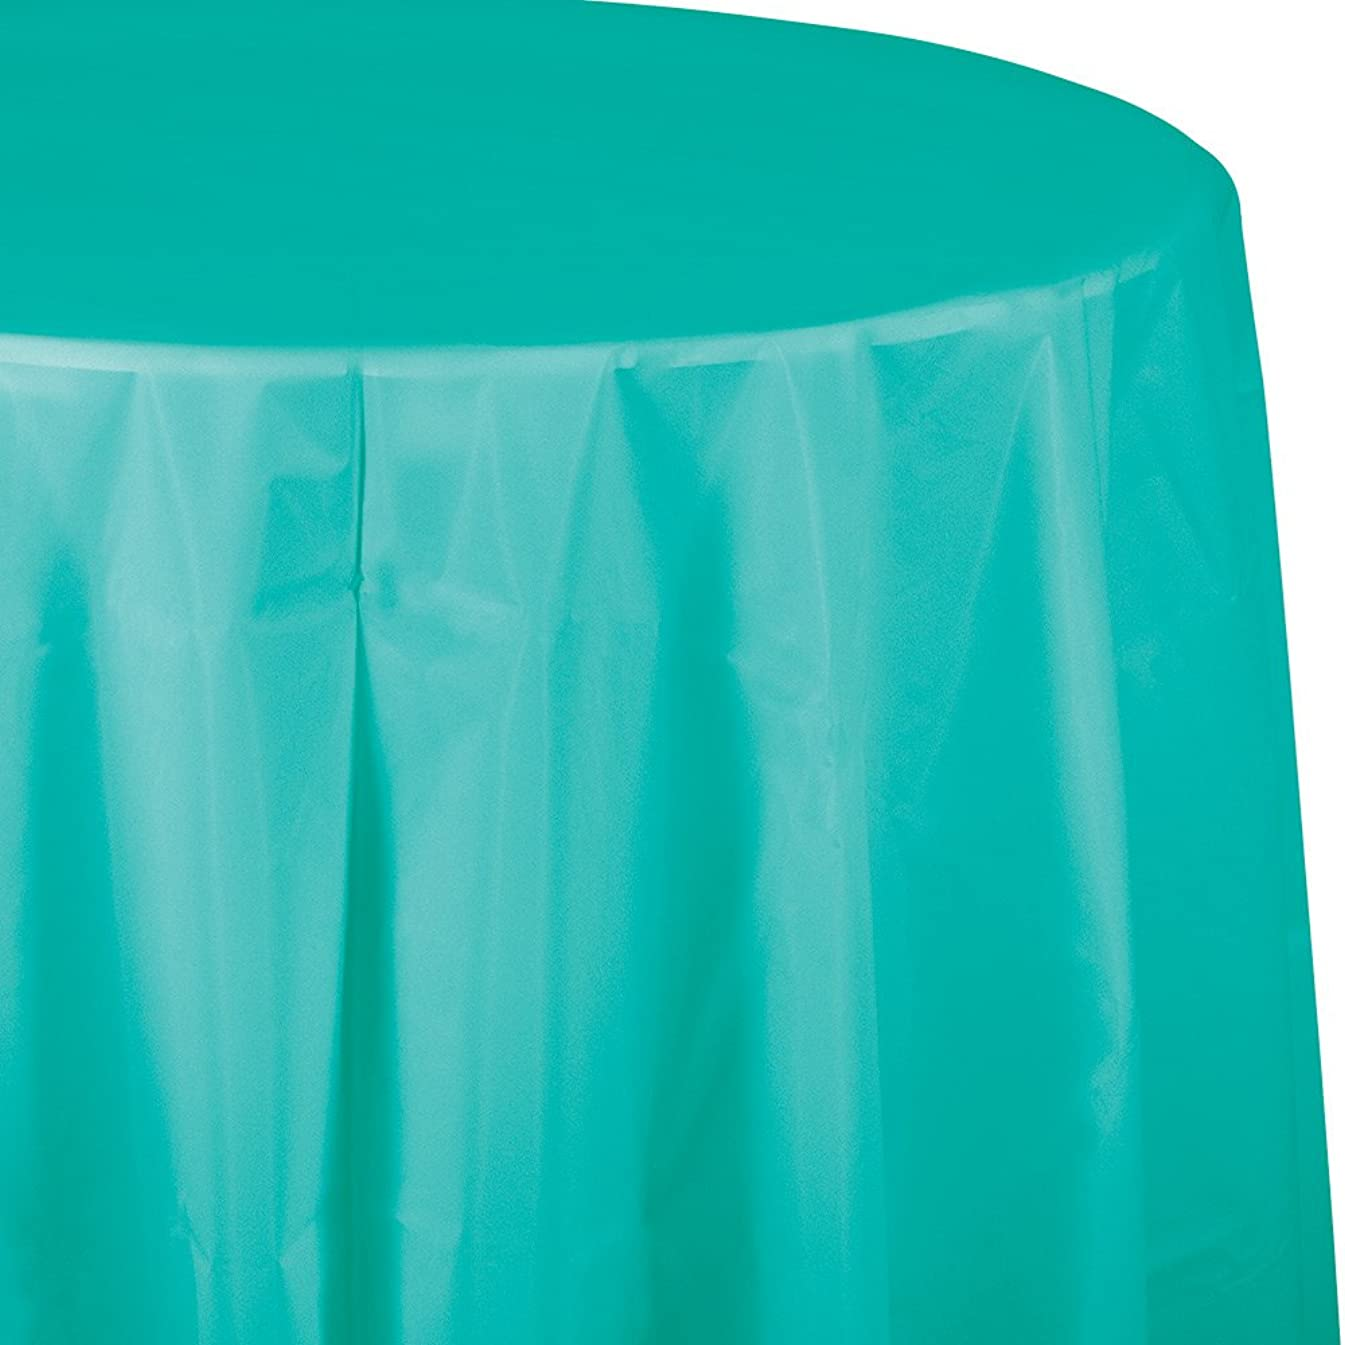 Creative Converting 324791 Touch of Color 12 Count Octy-Round Paper Table Covers, Teal Lagoon